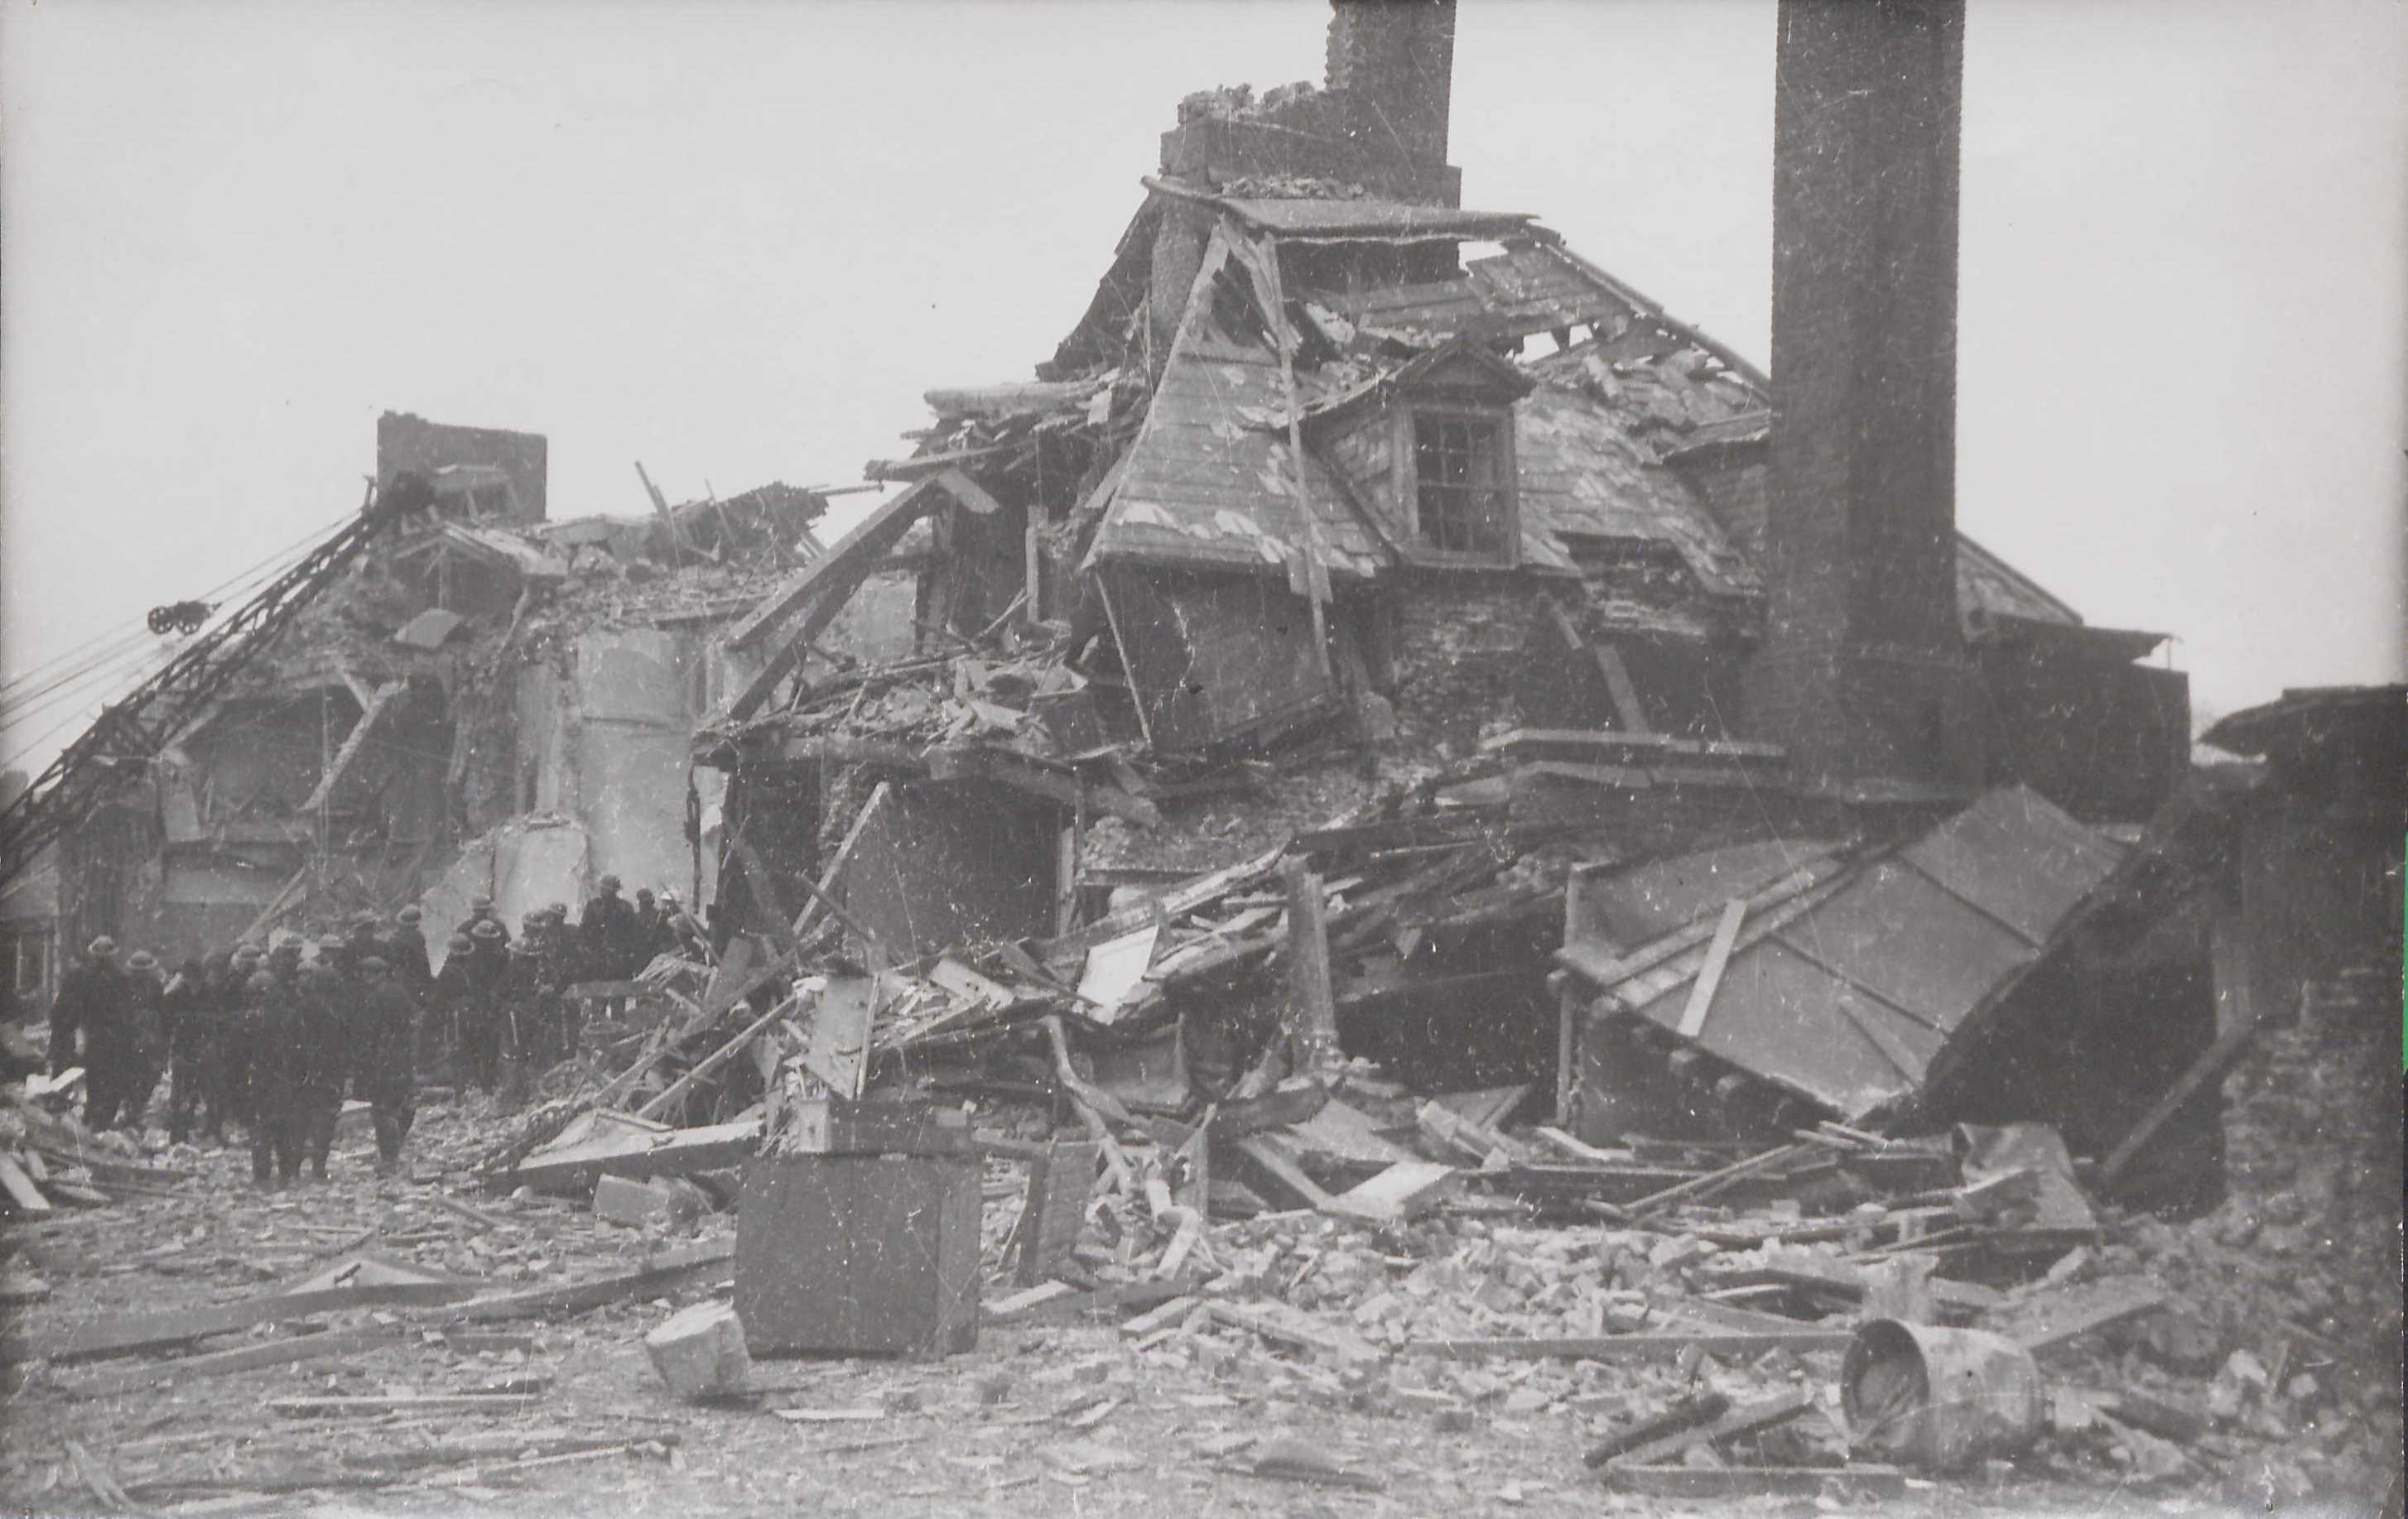 A destroyed building at the Royal Hospital